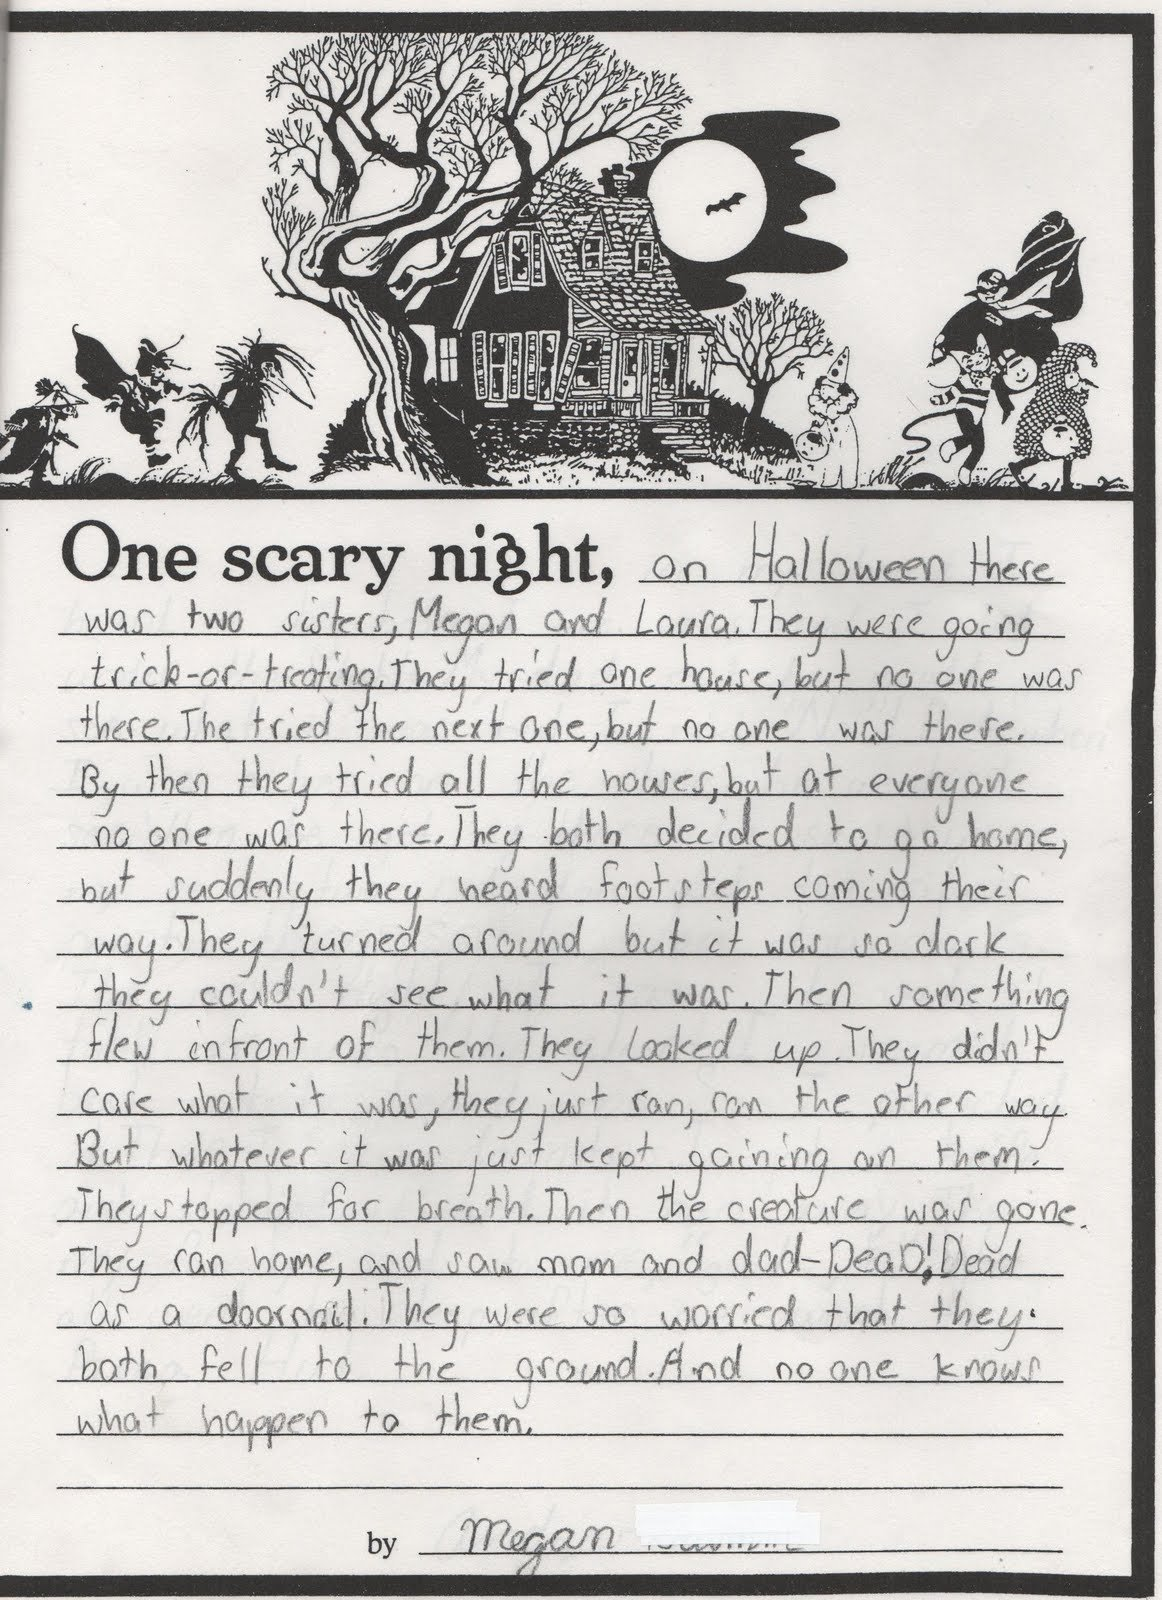 10 Spectacular Ideas For A Horror Story scary story writing elementary school enrichment activities 2020